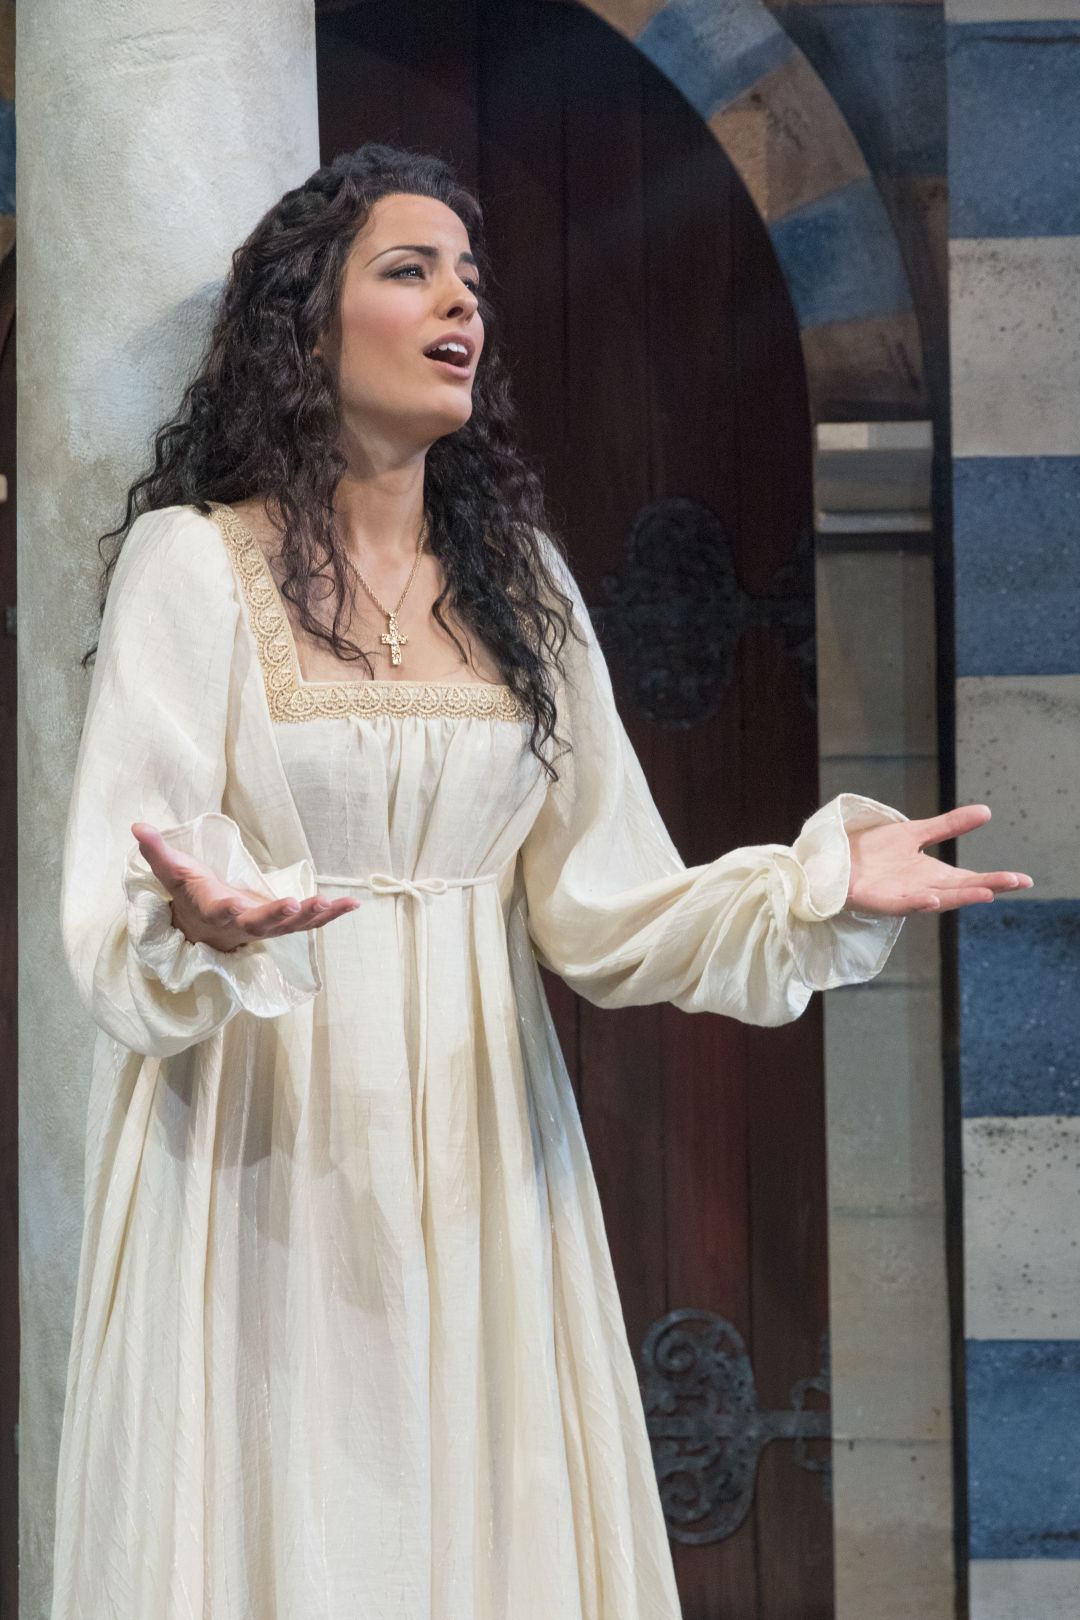 Elizabeth tredent sings the role of fiora in the love of three kings photo by rod millington dqlakd